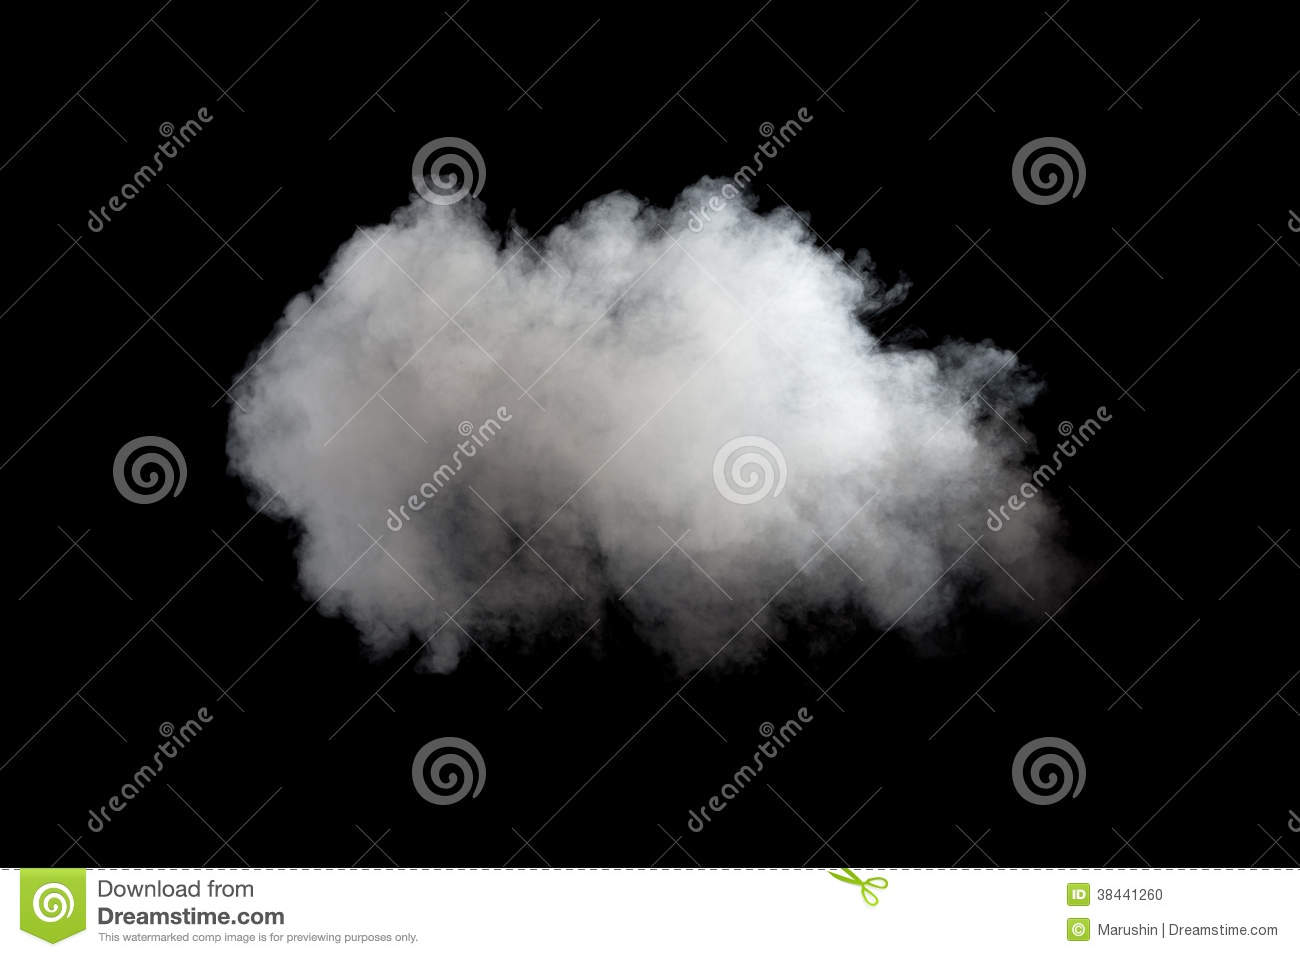 White Smoke On Black Background Stock Photo - Image: 38441260